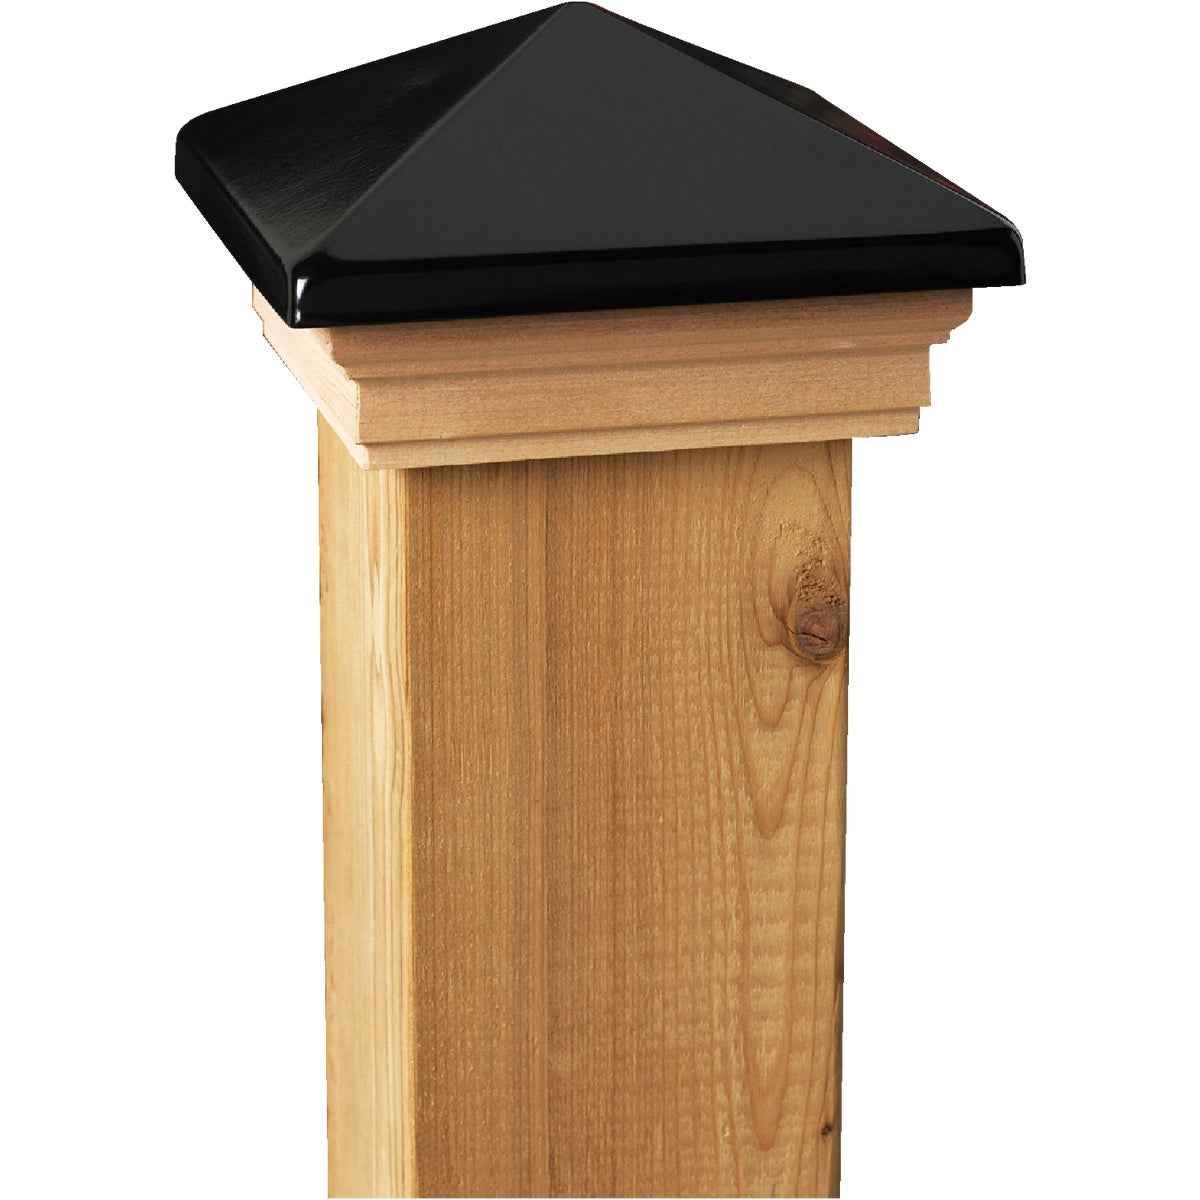 4X4 BLK/CDR VCT POST CAP - 73520 by Ufpi   Deckorators